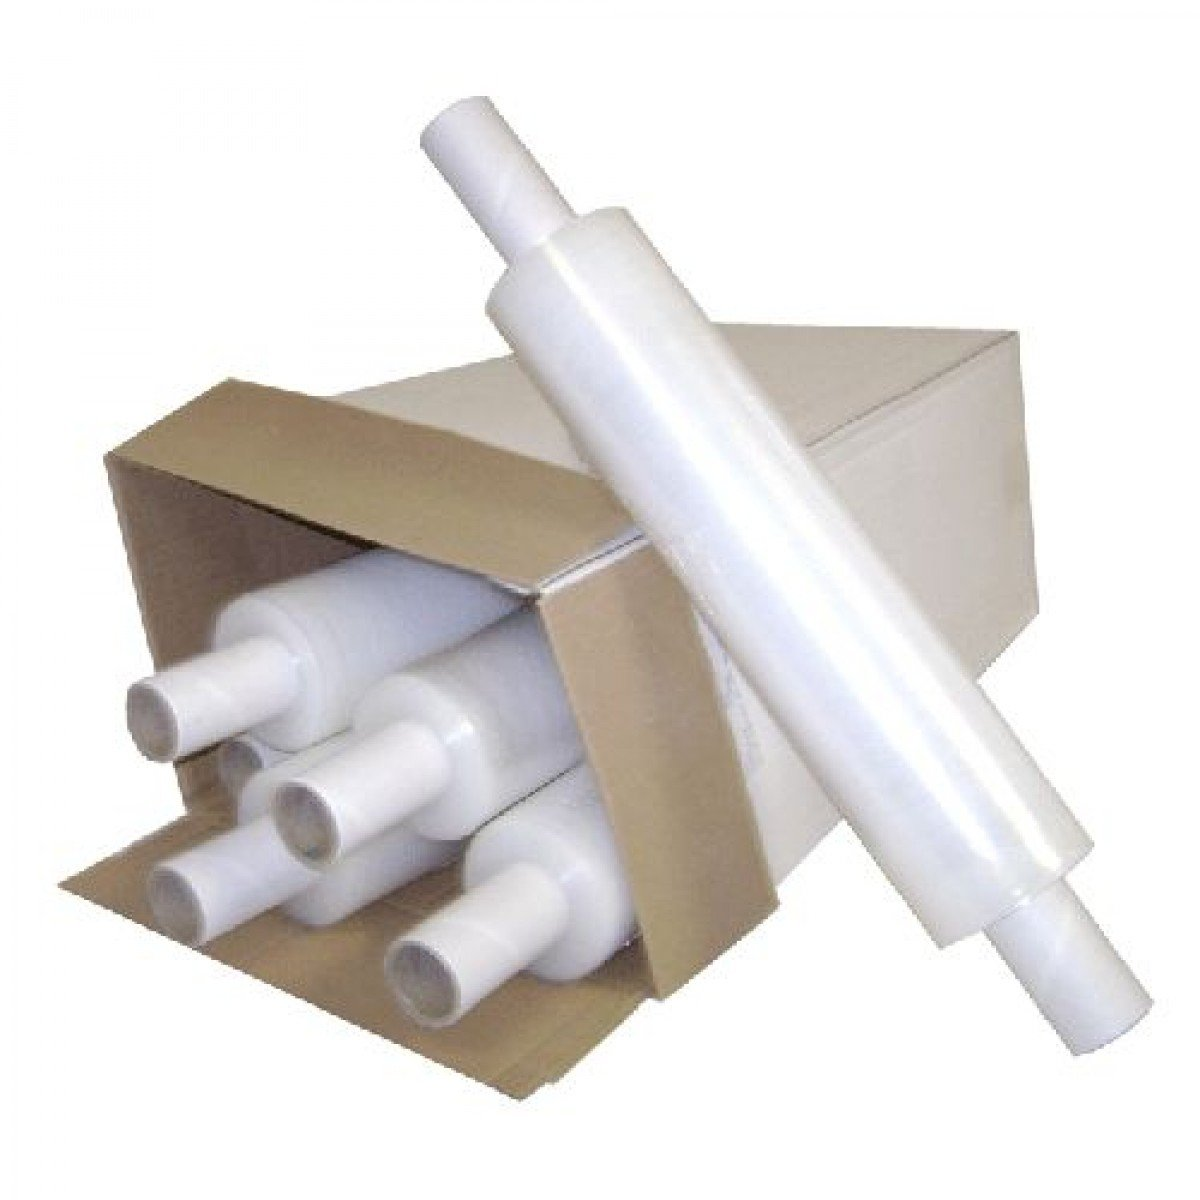 12 X ROLLS CLEAR PALLET STRETCH SHRINK WRAPS CAST PARCEL PACKING CLING FILM JeeJaan®